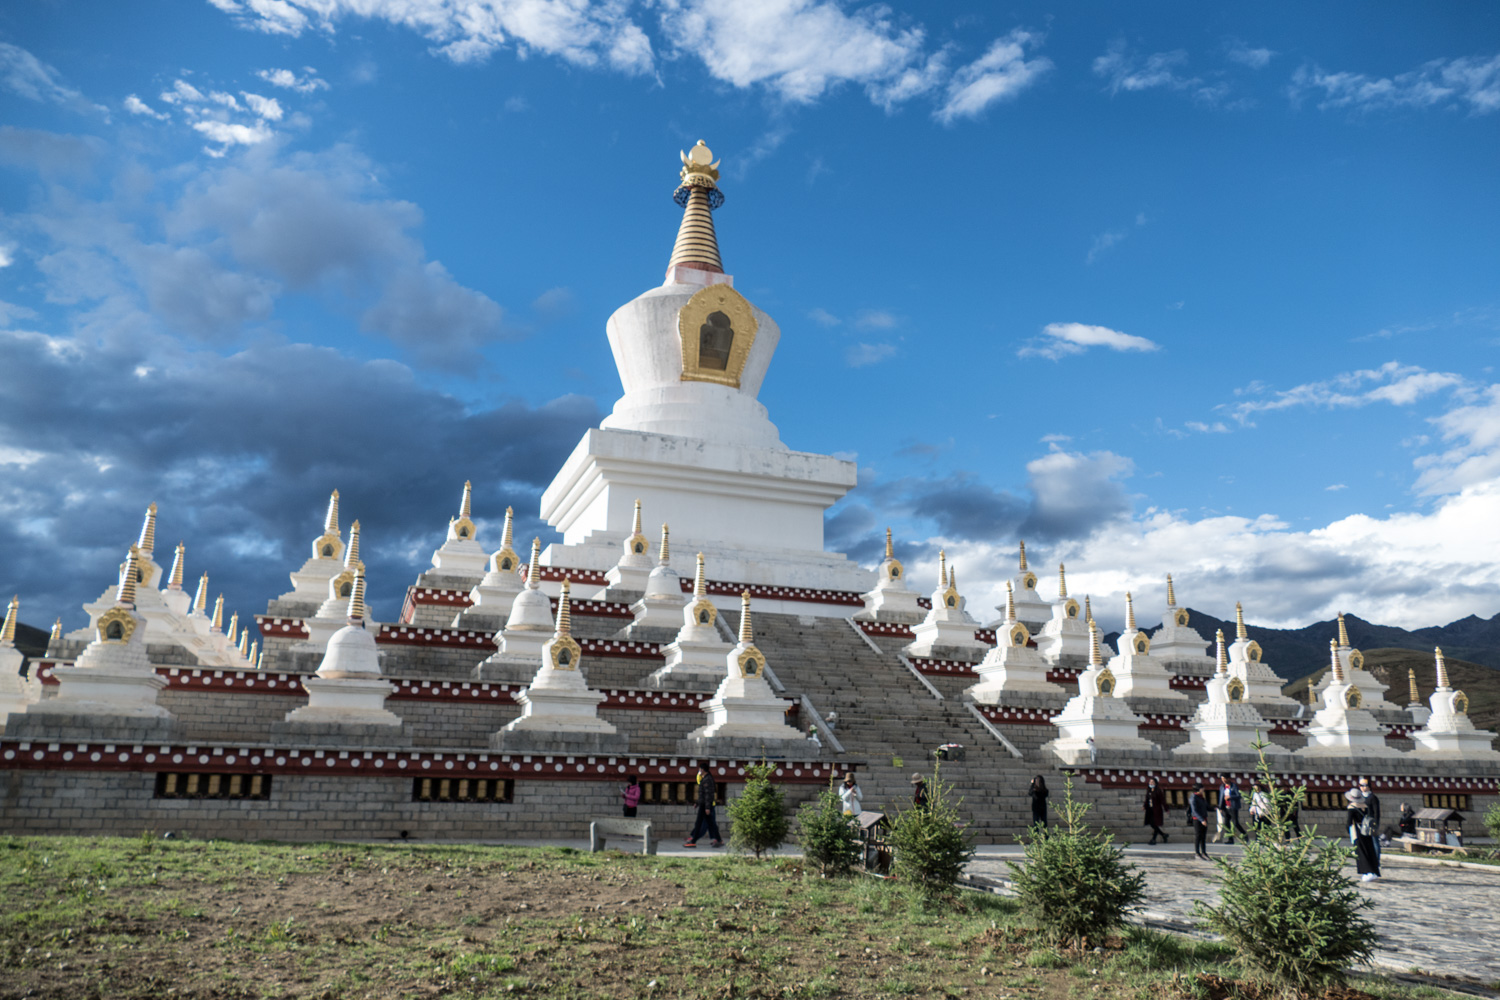 The primary stupa in Daocheng. People can be seen walking around the base and turning prayer wheels as they go.